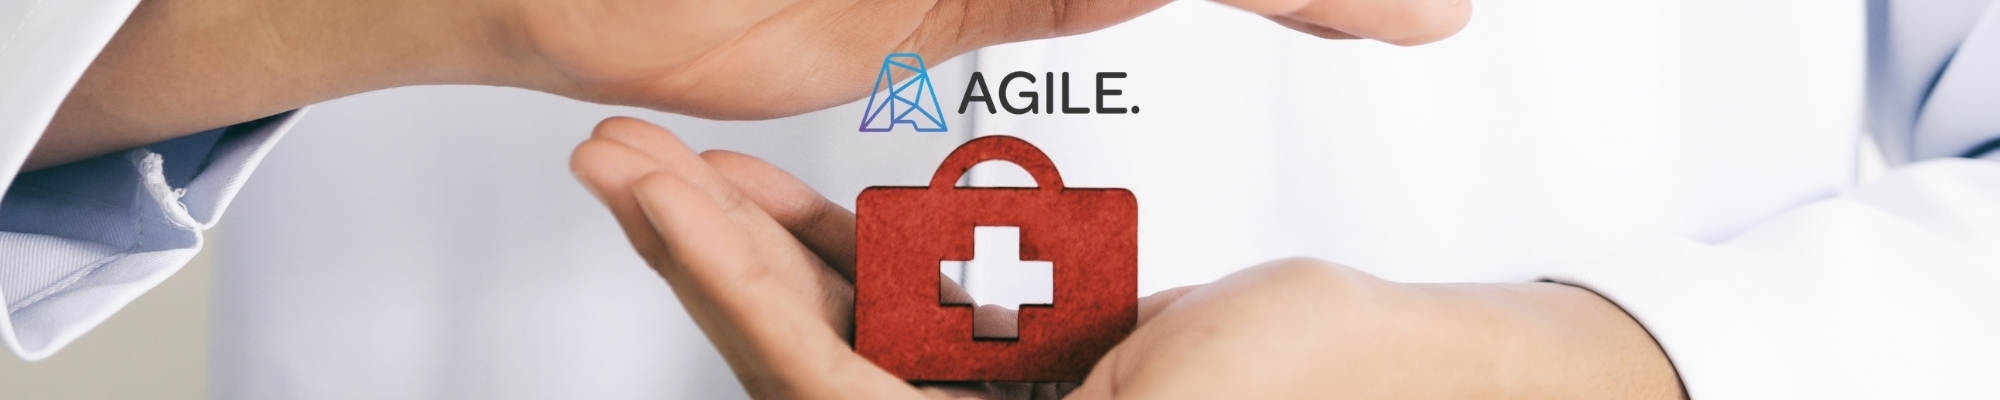 Agile... making tech work for you